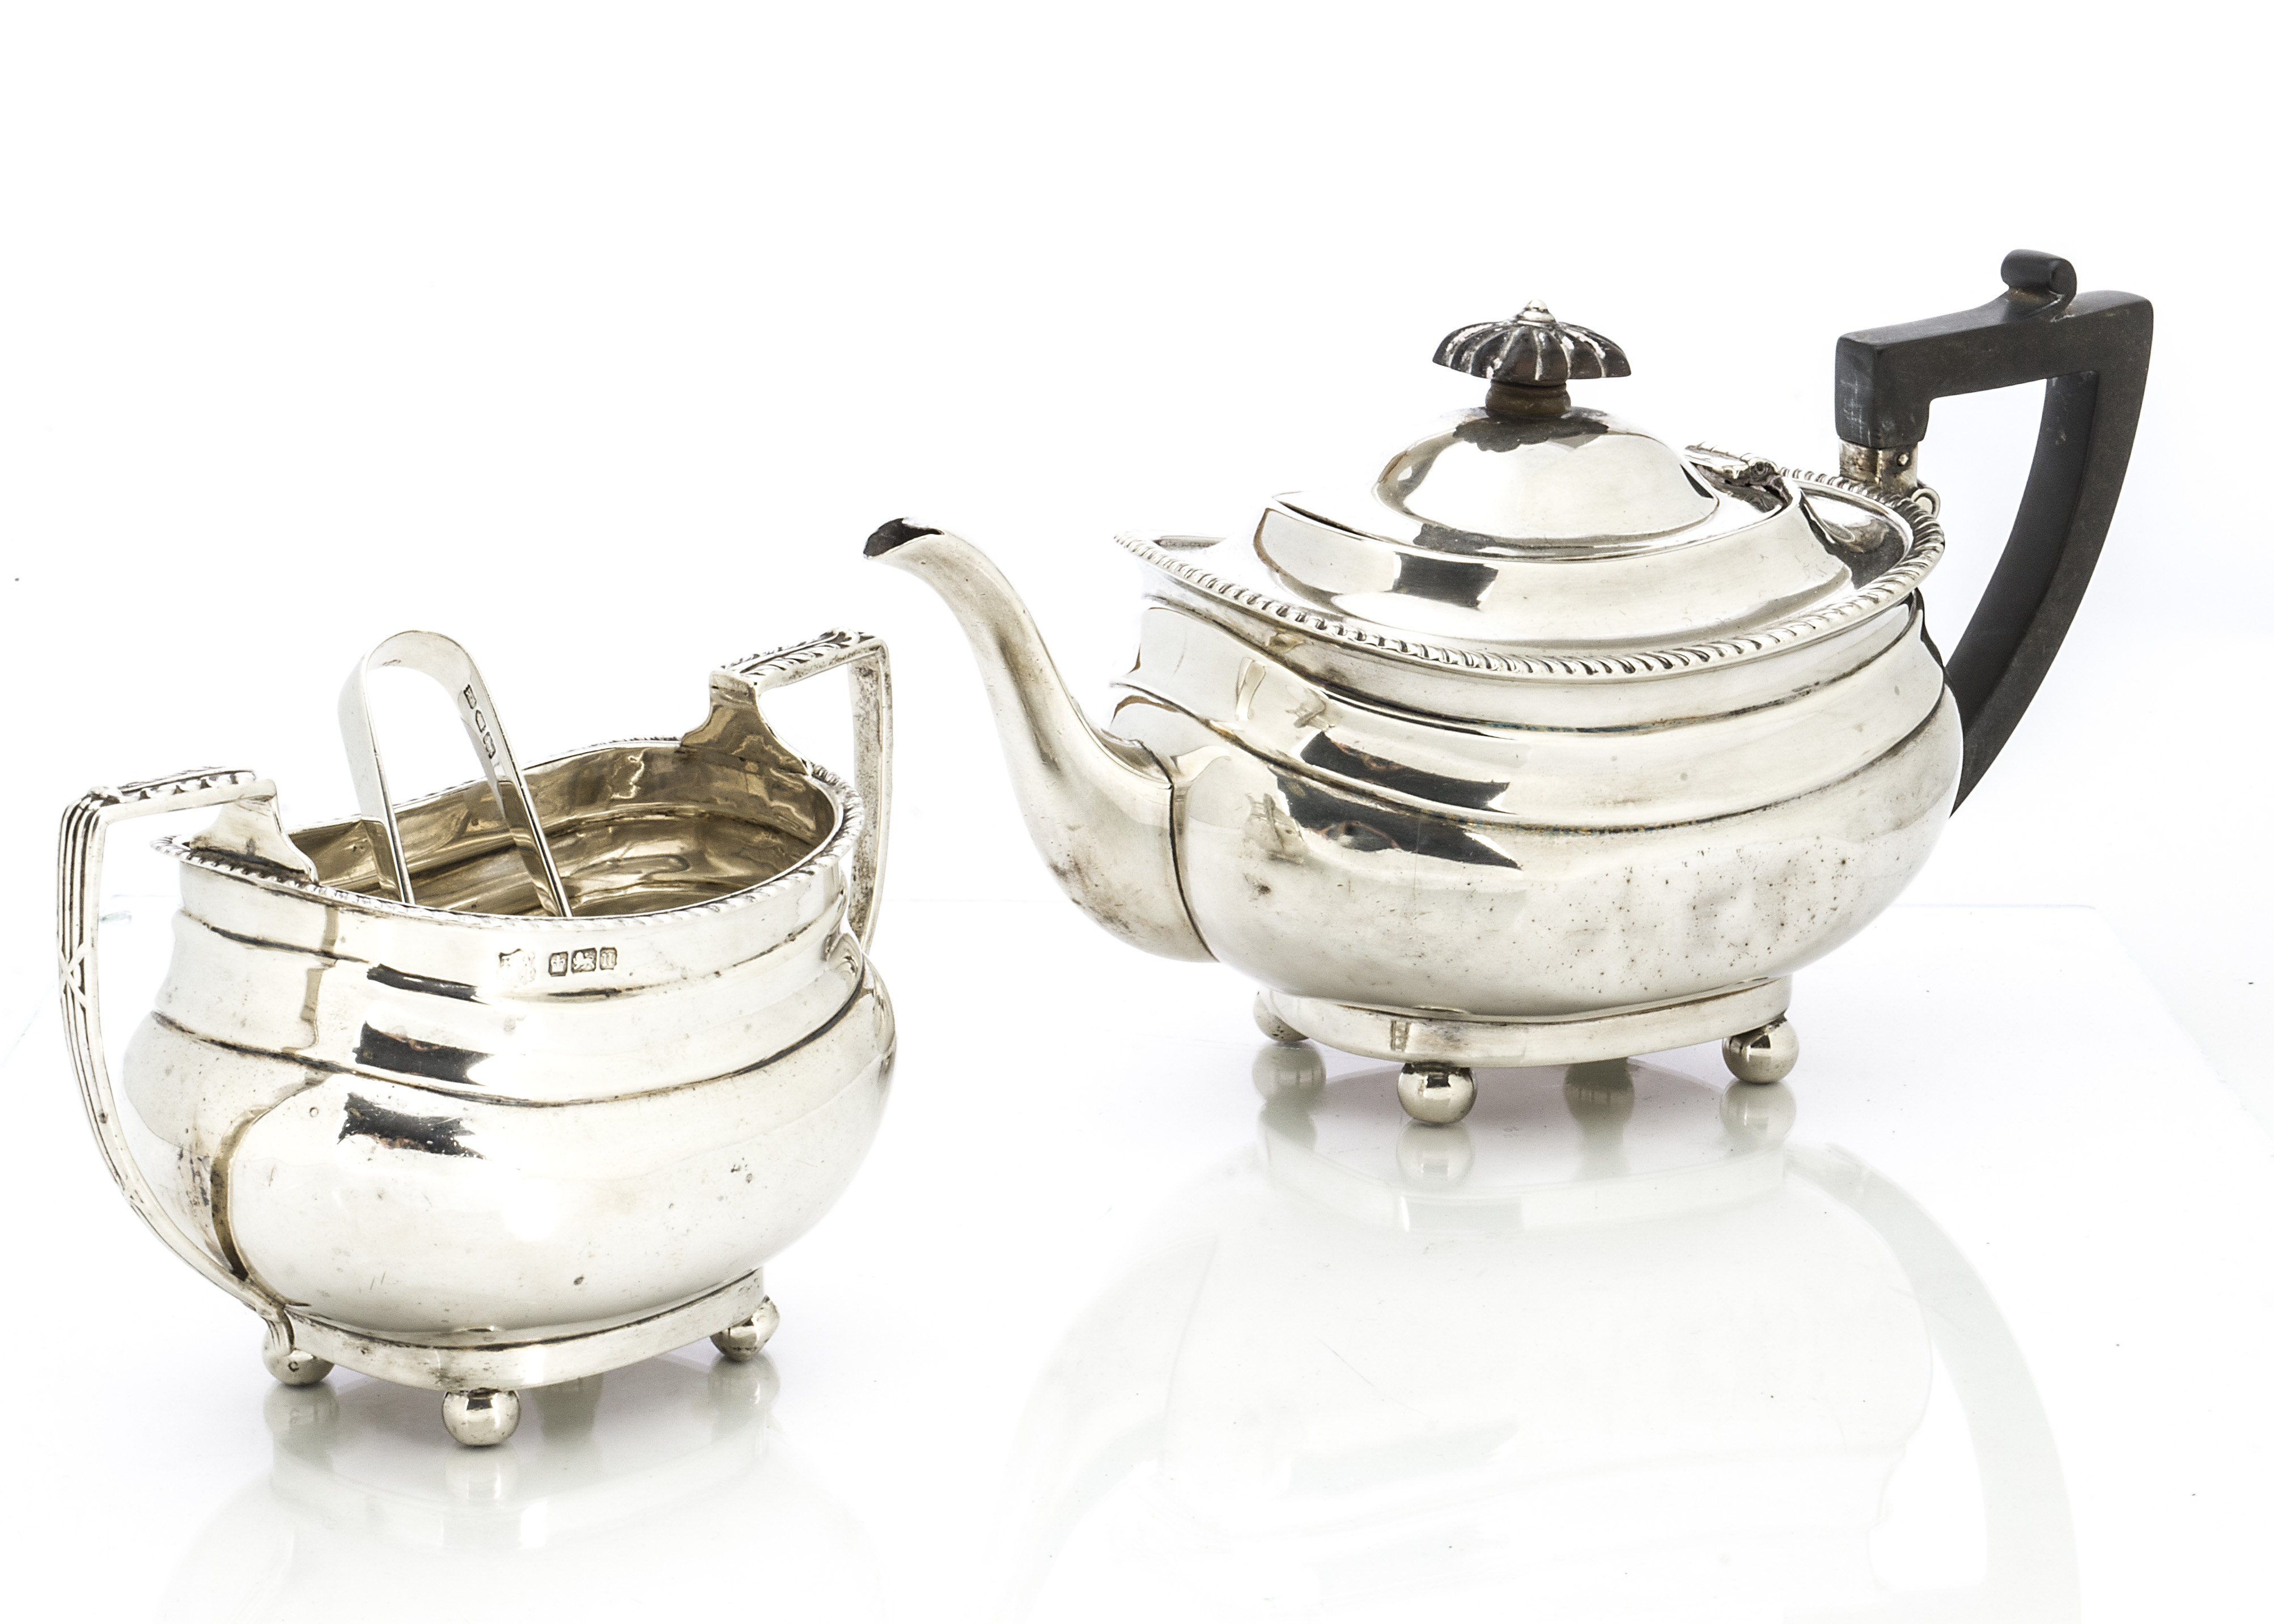 Lot 16 - An Edwardian silver teapot and sugar basin by E.W & Co, on four bun supports with gadrooned rims,